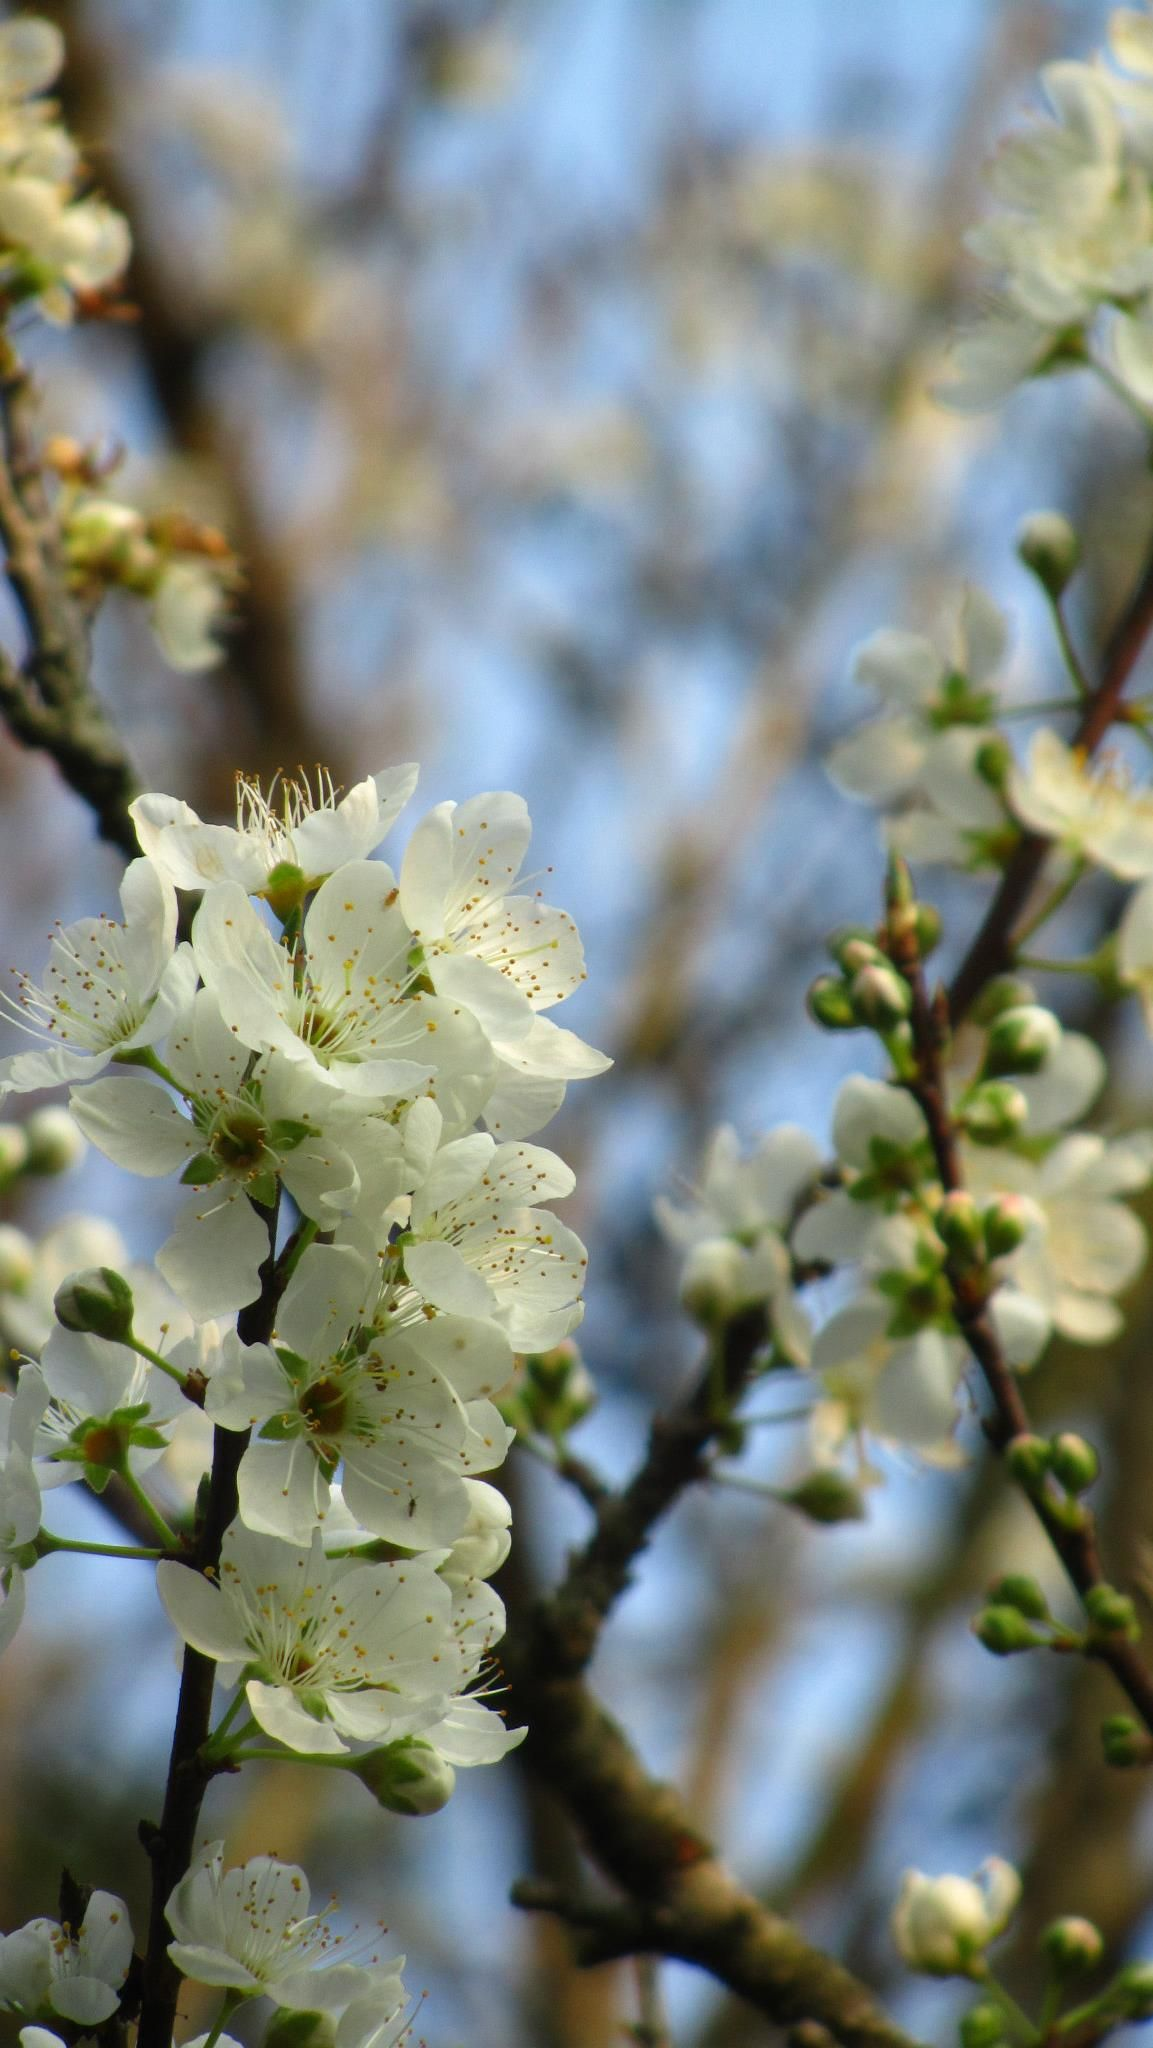 Plum blossom, the National Flower of Taiwan. China image